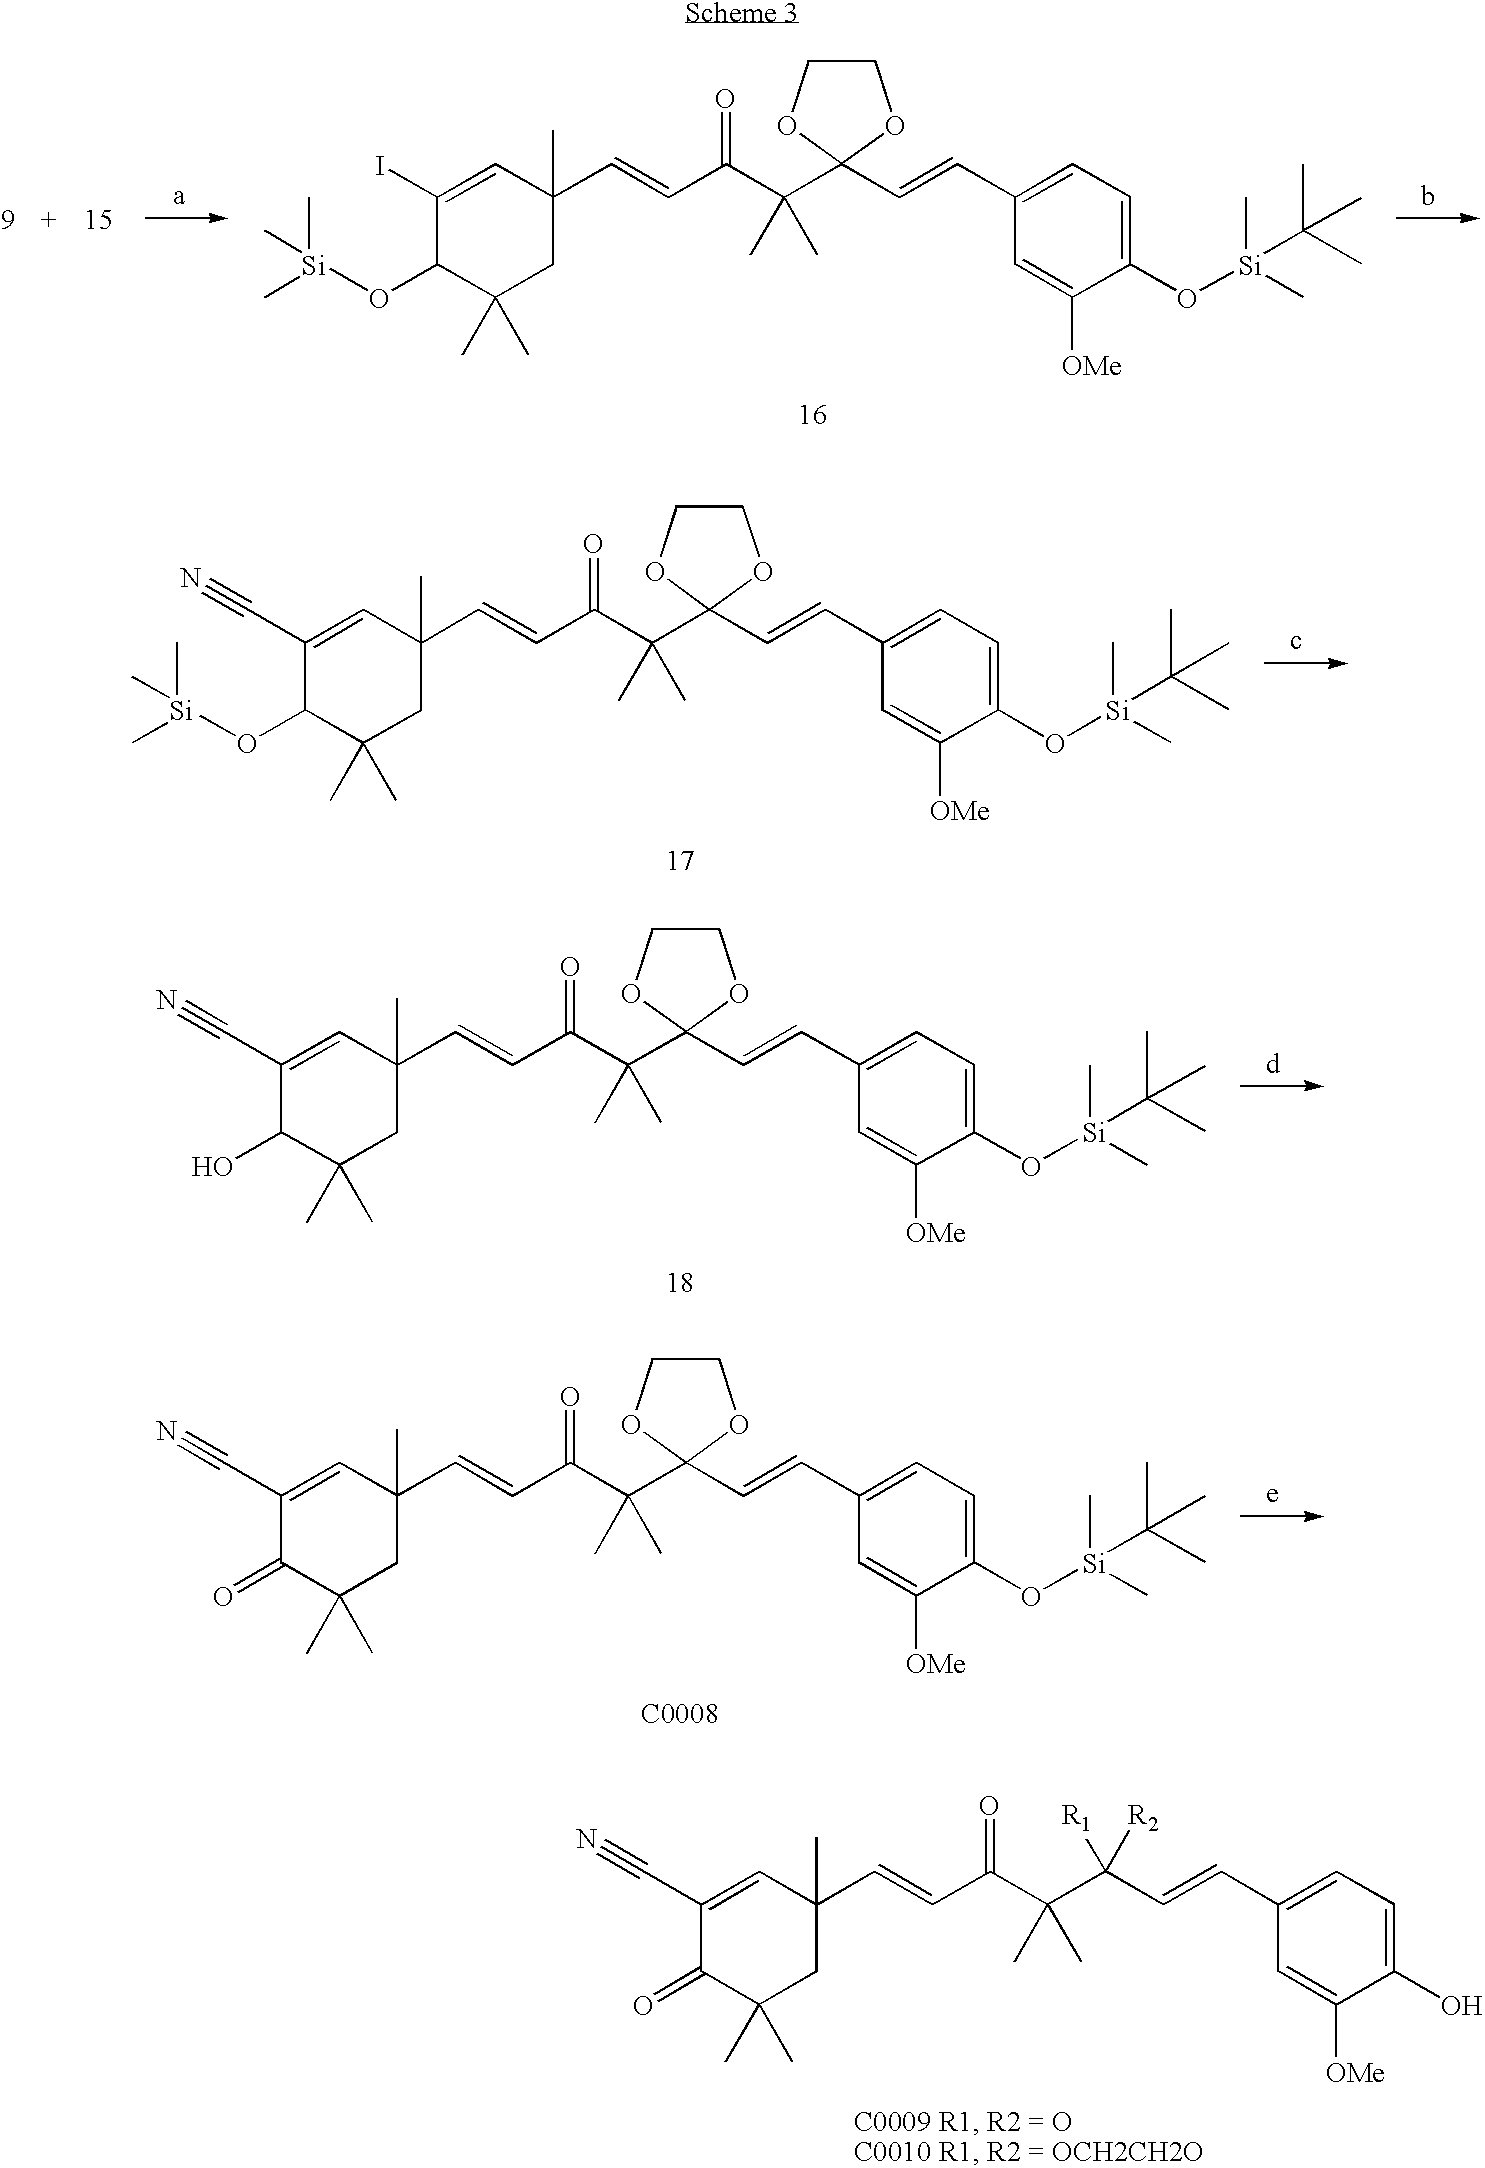 us8258329b2 dehydroandrosterone analogs including an anti Asco Transfer Switch figure us08258329 20120904 c00046